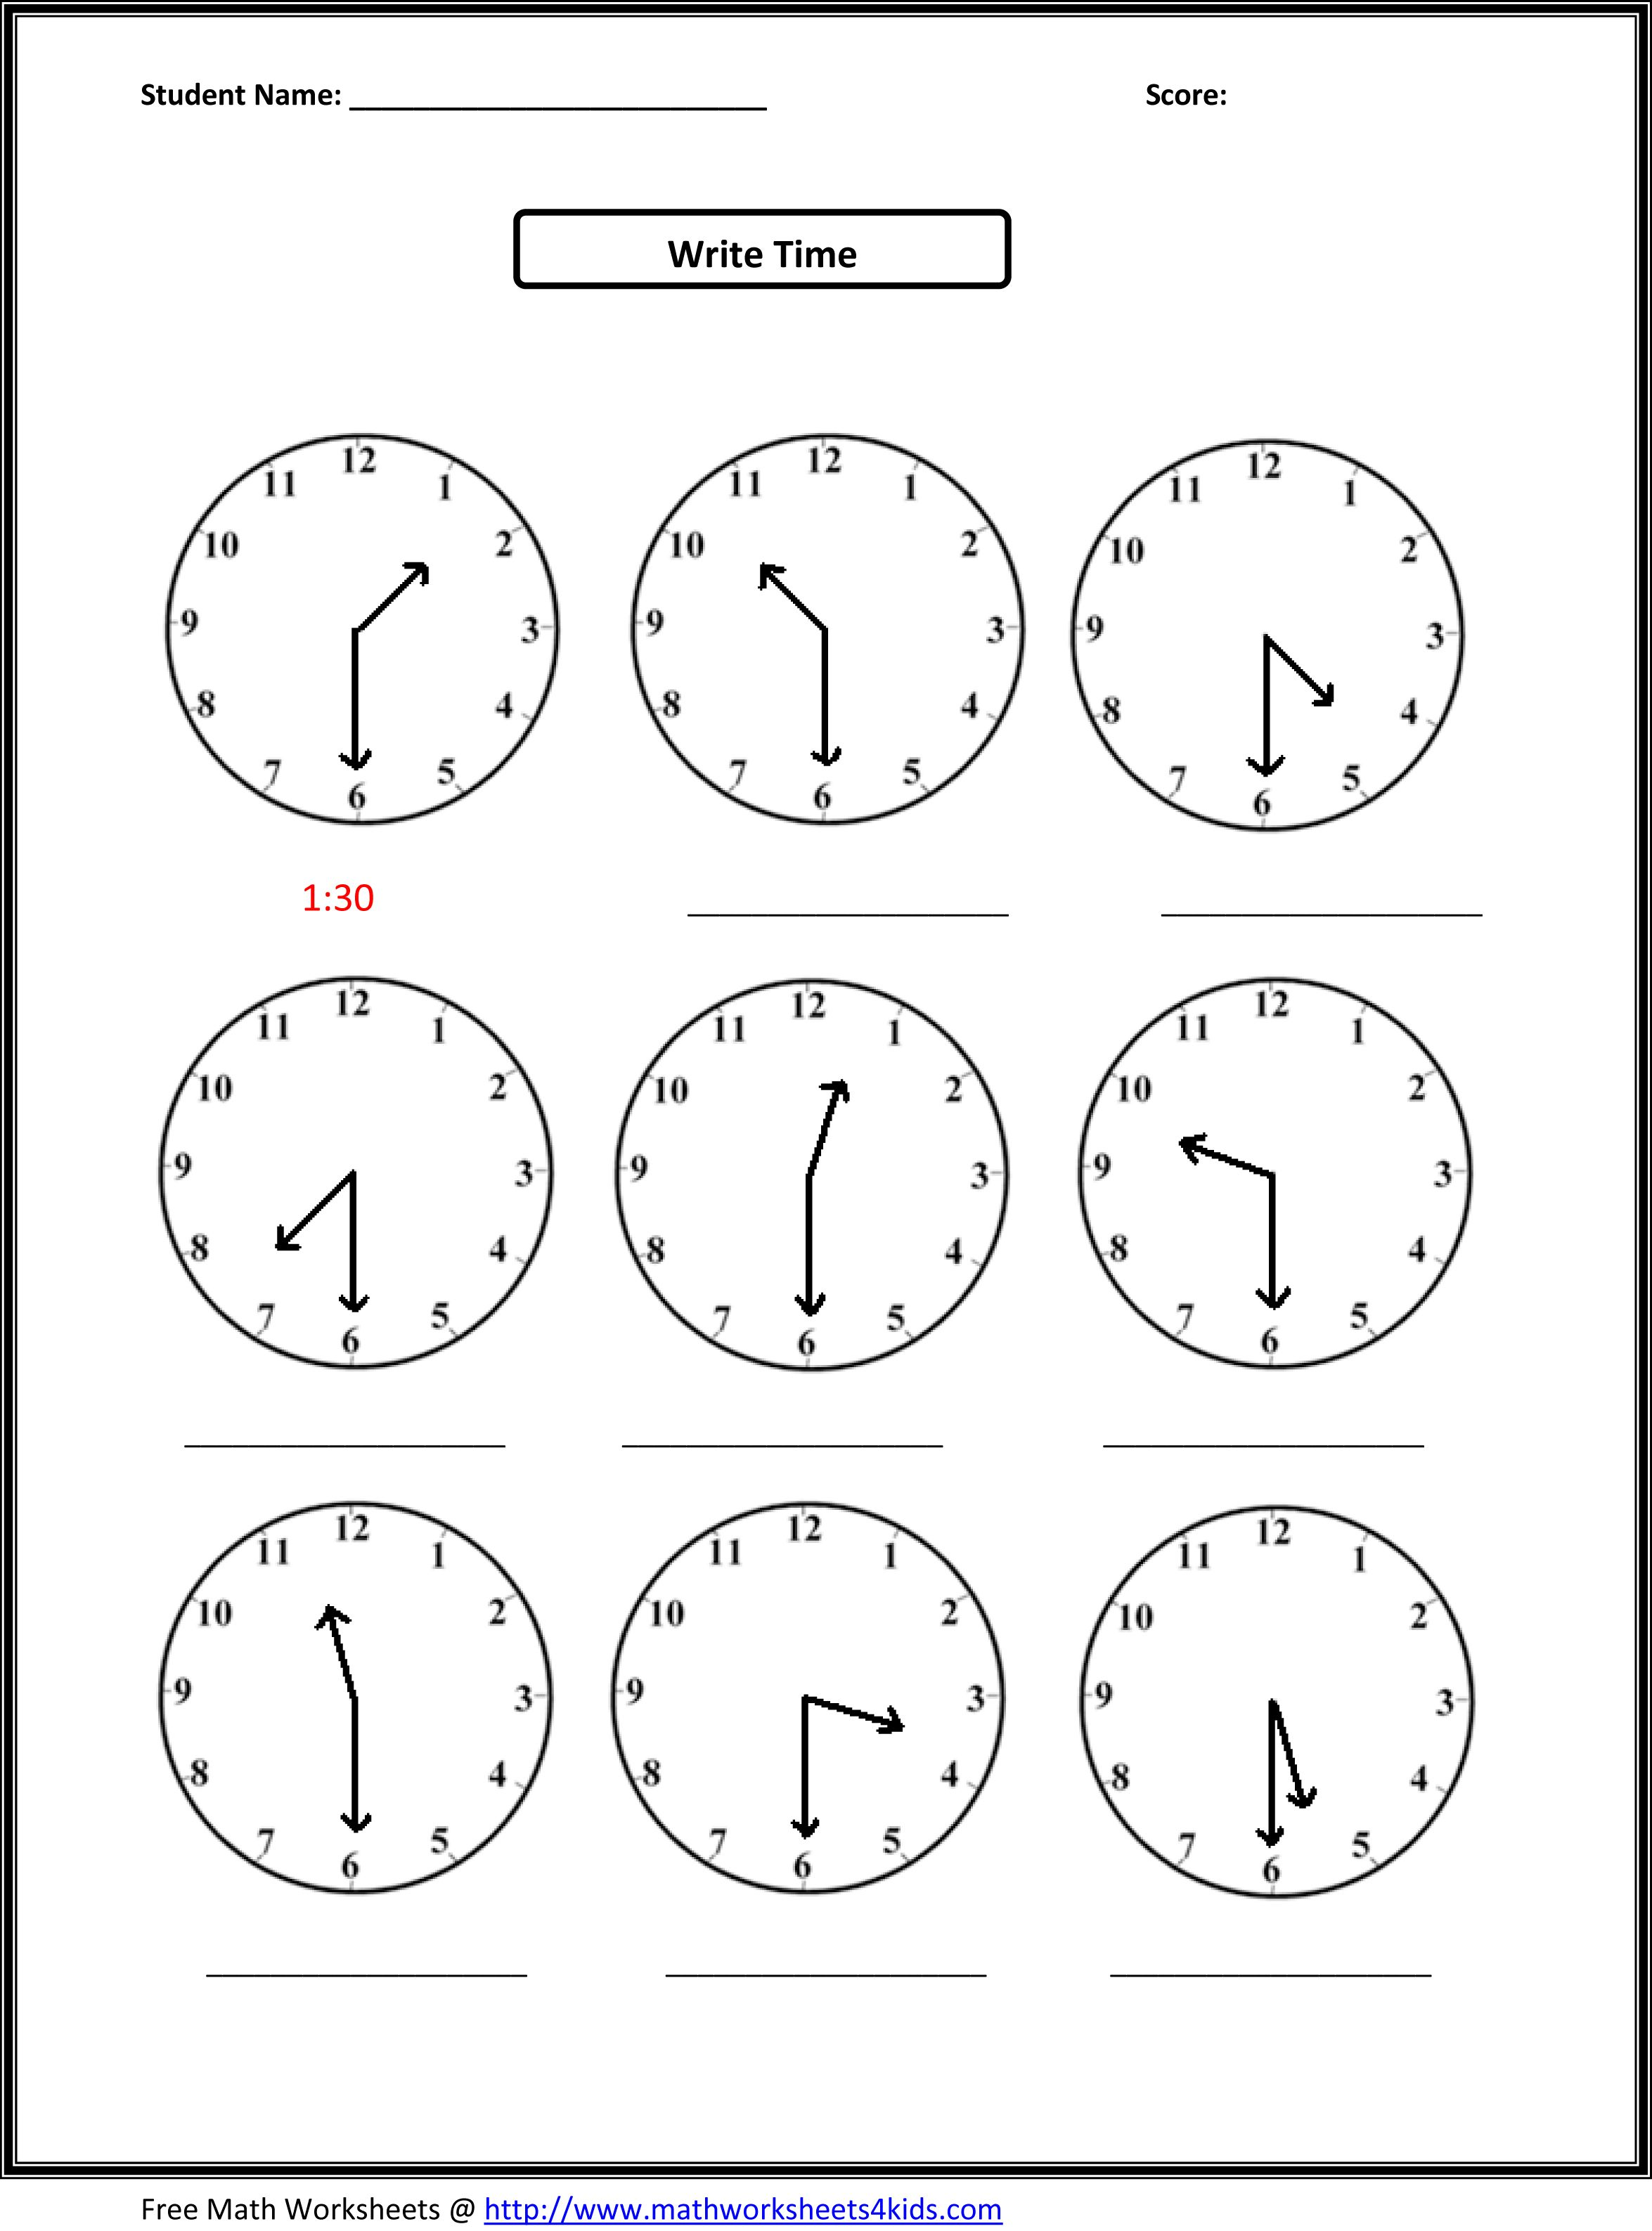 Proatmealus  Marvellous Worksheet On Time For Grade   Reocurent With Exciting Free Printable Telling Time Worksheets Nd Grade  Reocurent With Easy On The Eye Earth Day Worksheets For Preschool Also Egg Drop Worksheet In Addition Odd And Even Number Worksheets And Th Grade Coordinate Plane Worksheets As Well As Phonics Worksheets For Second Grade Additionally Comparing Numbers Worksheets Rd Grade From Reocurentcom With Proatmealus  Exciting Worksheet On Time For Grade   Reocurent With Easy On The Eye Free Printable Telling Time Worksheets Nd Grade  Reocurent And Marvellous Earth Day Worksheets For Preschool Also Egg Drop Worksheet In Addition Odd And Even Number Worksheets From Reocurentcom